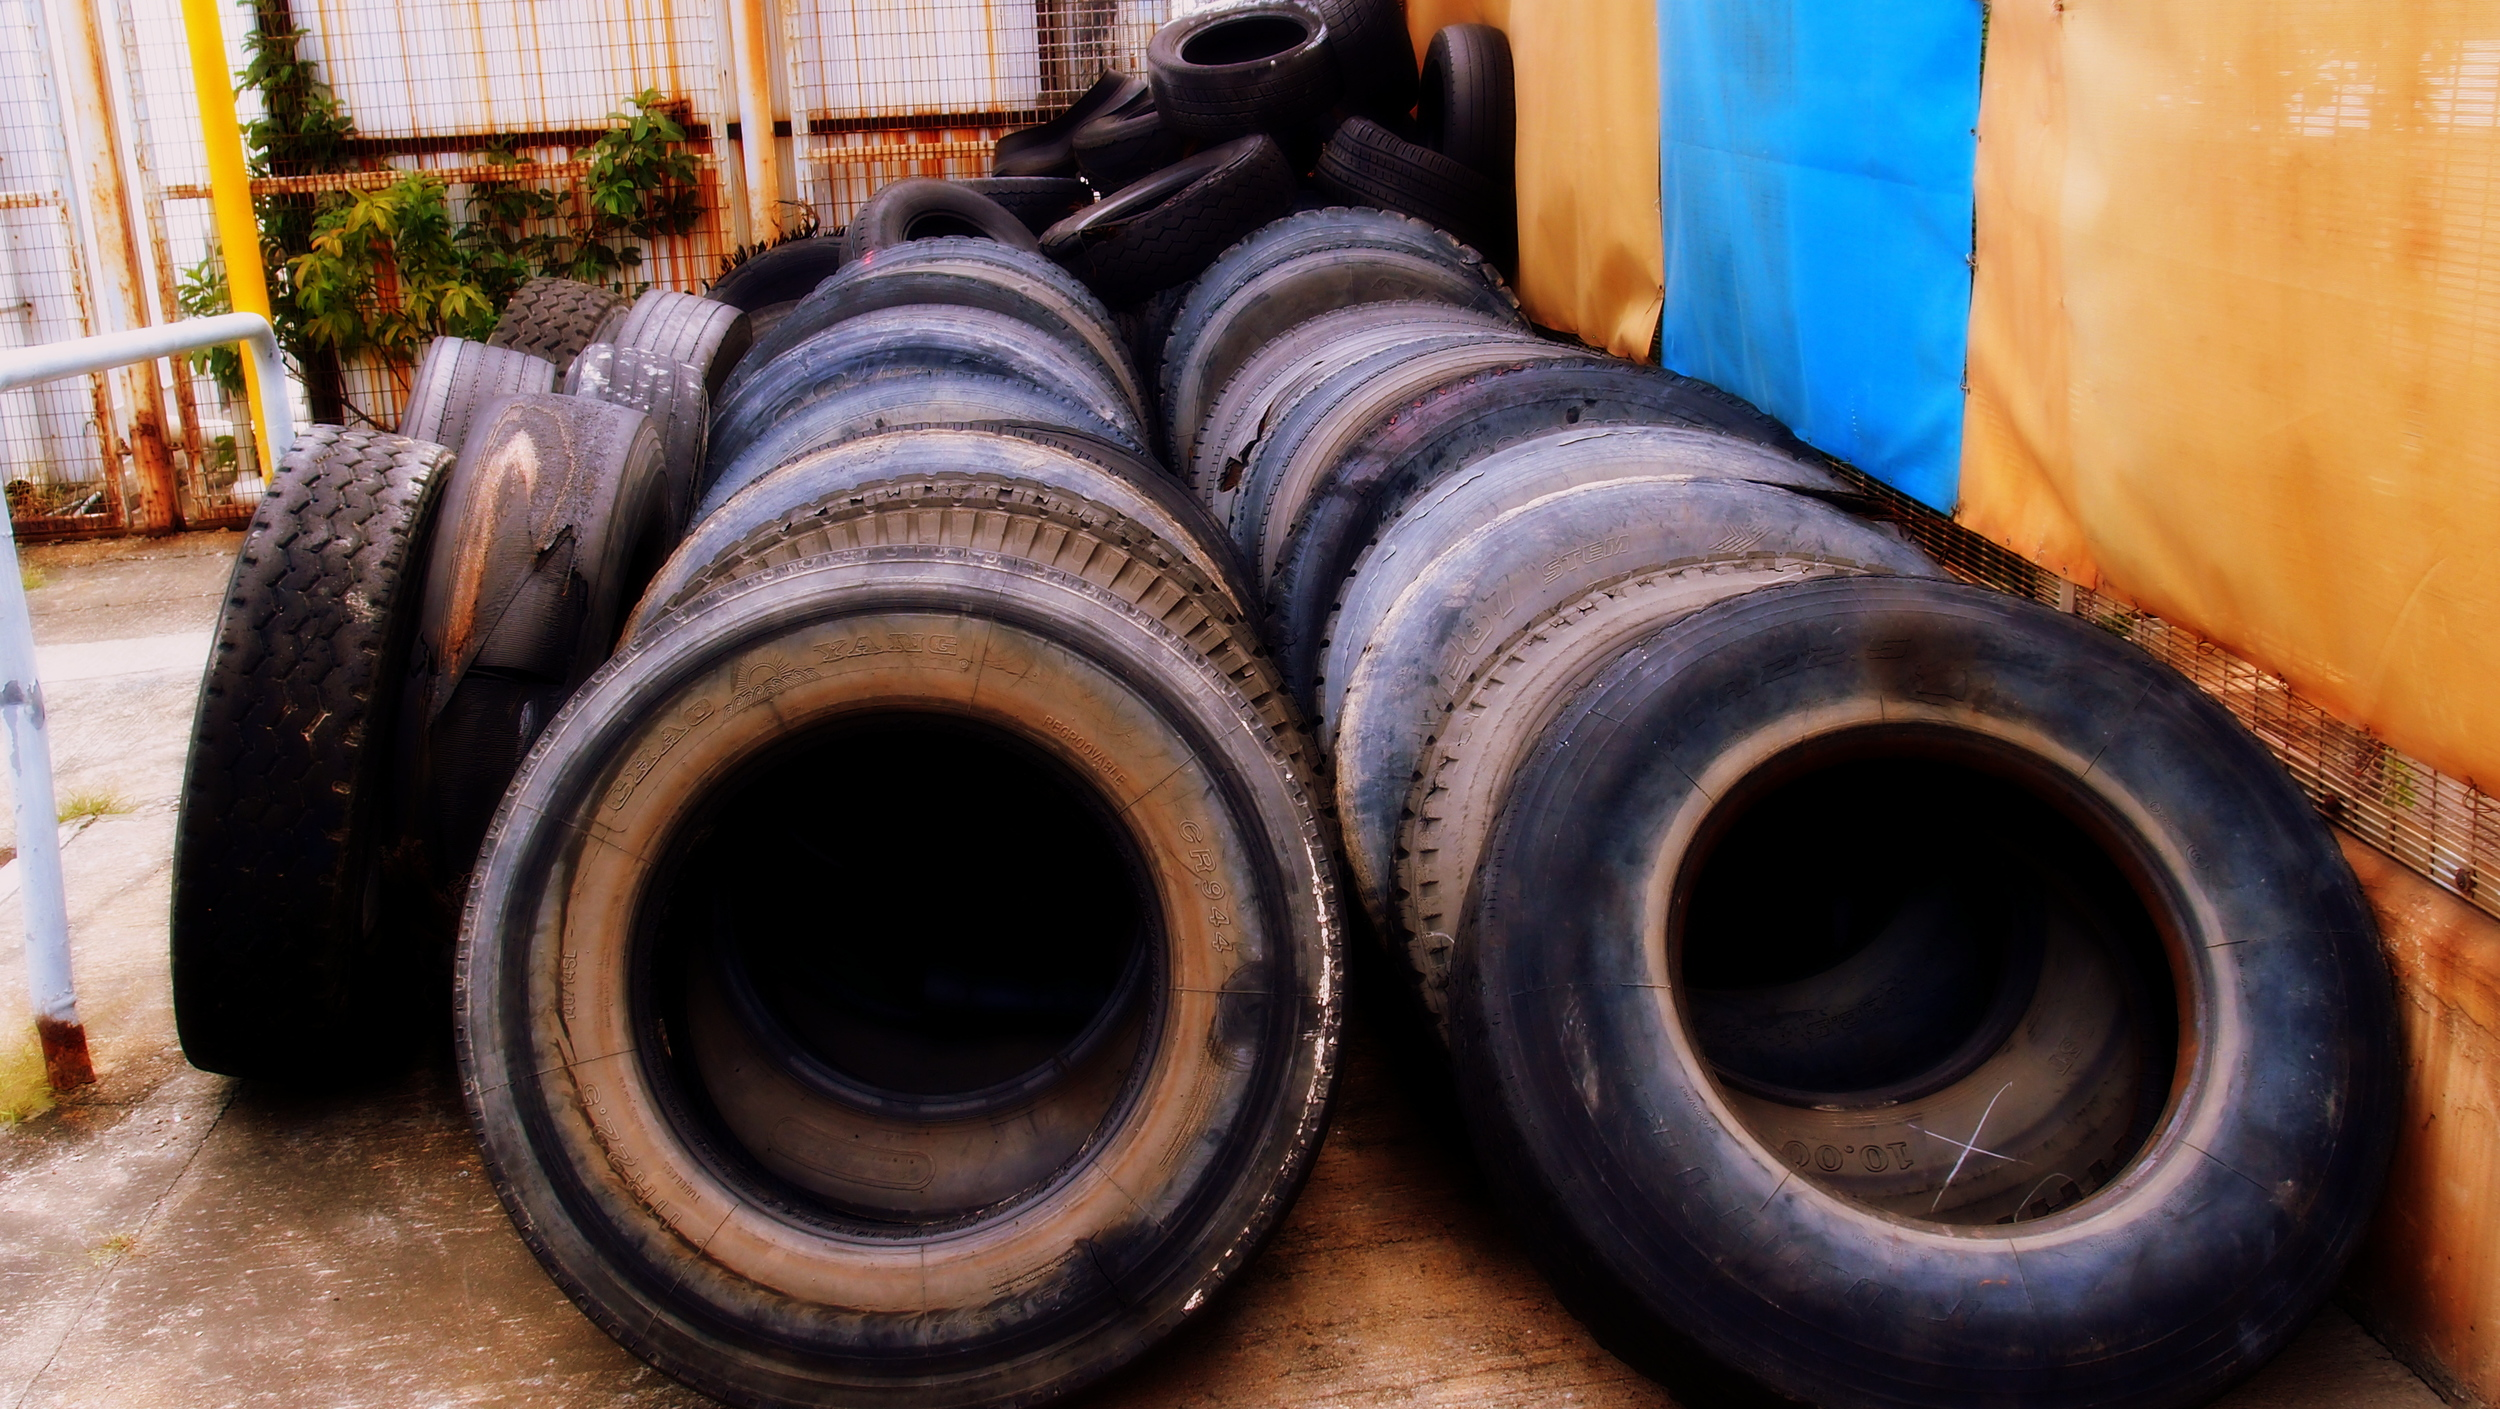 I was tired when I came across these tyres